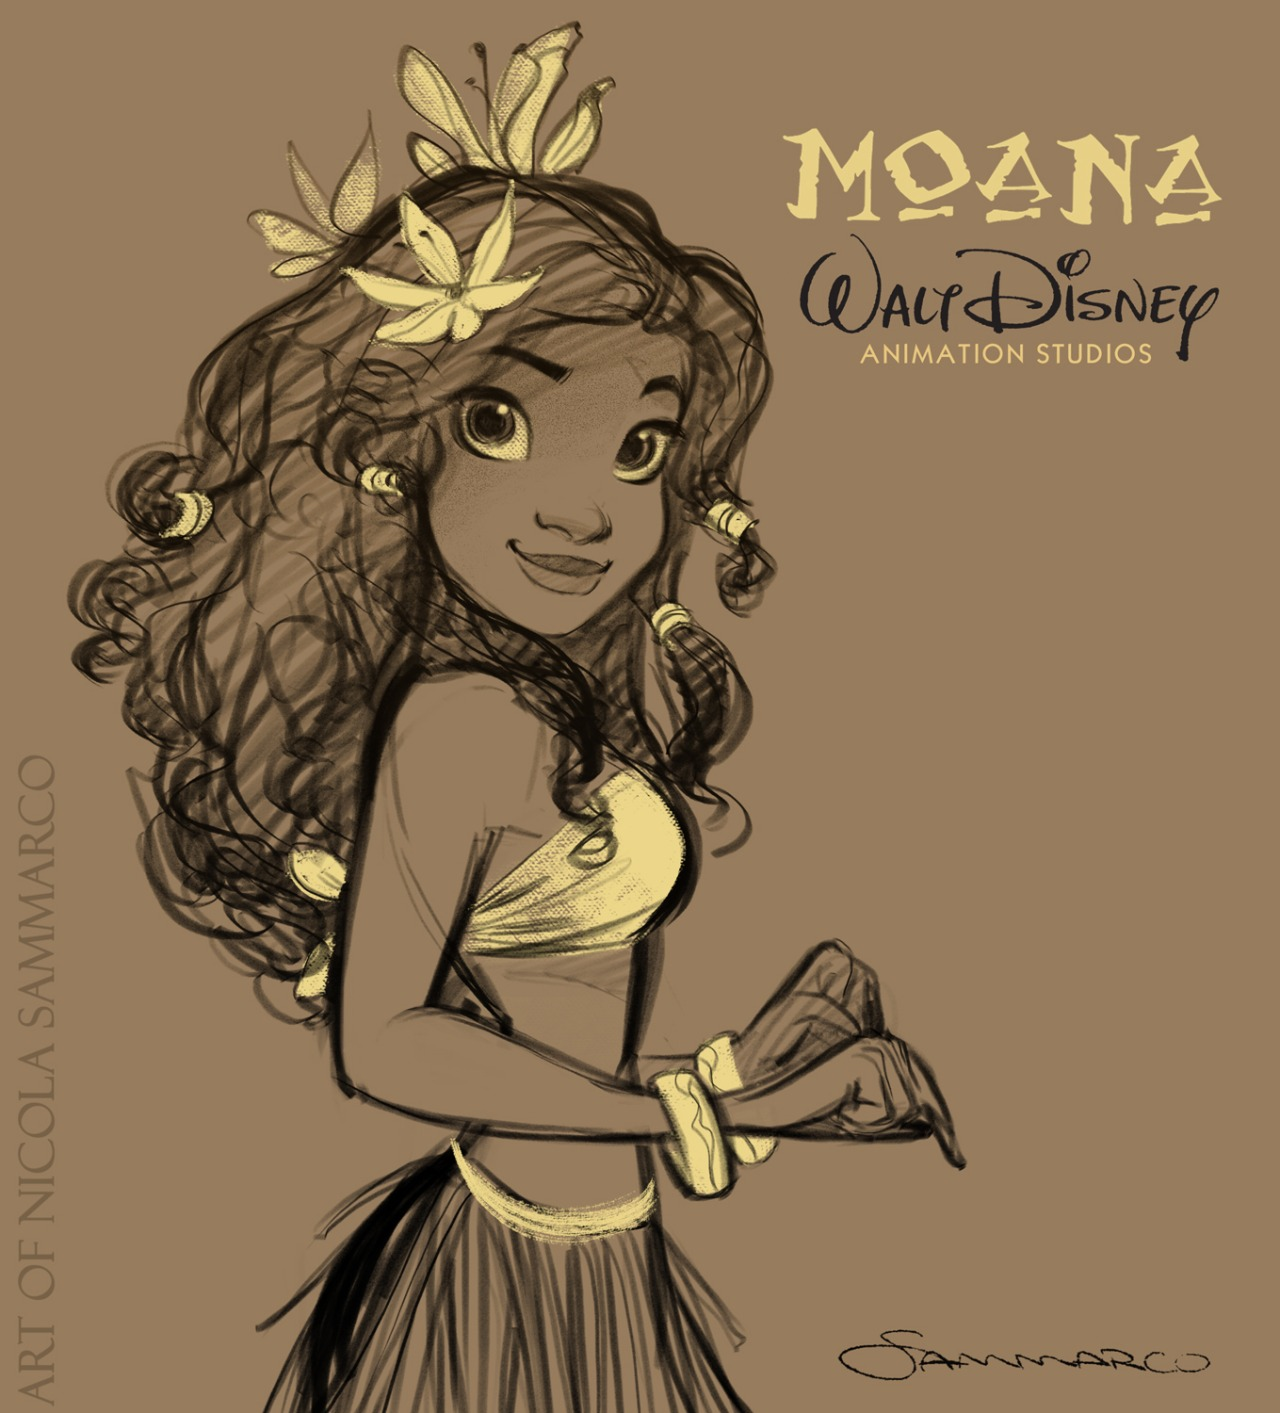 Disney Princess Images Moana HD Wallpaper And Background